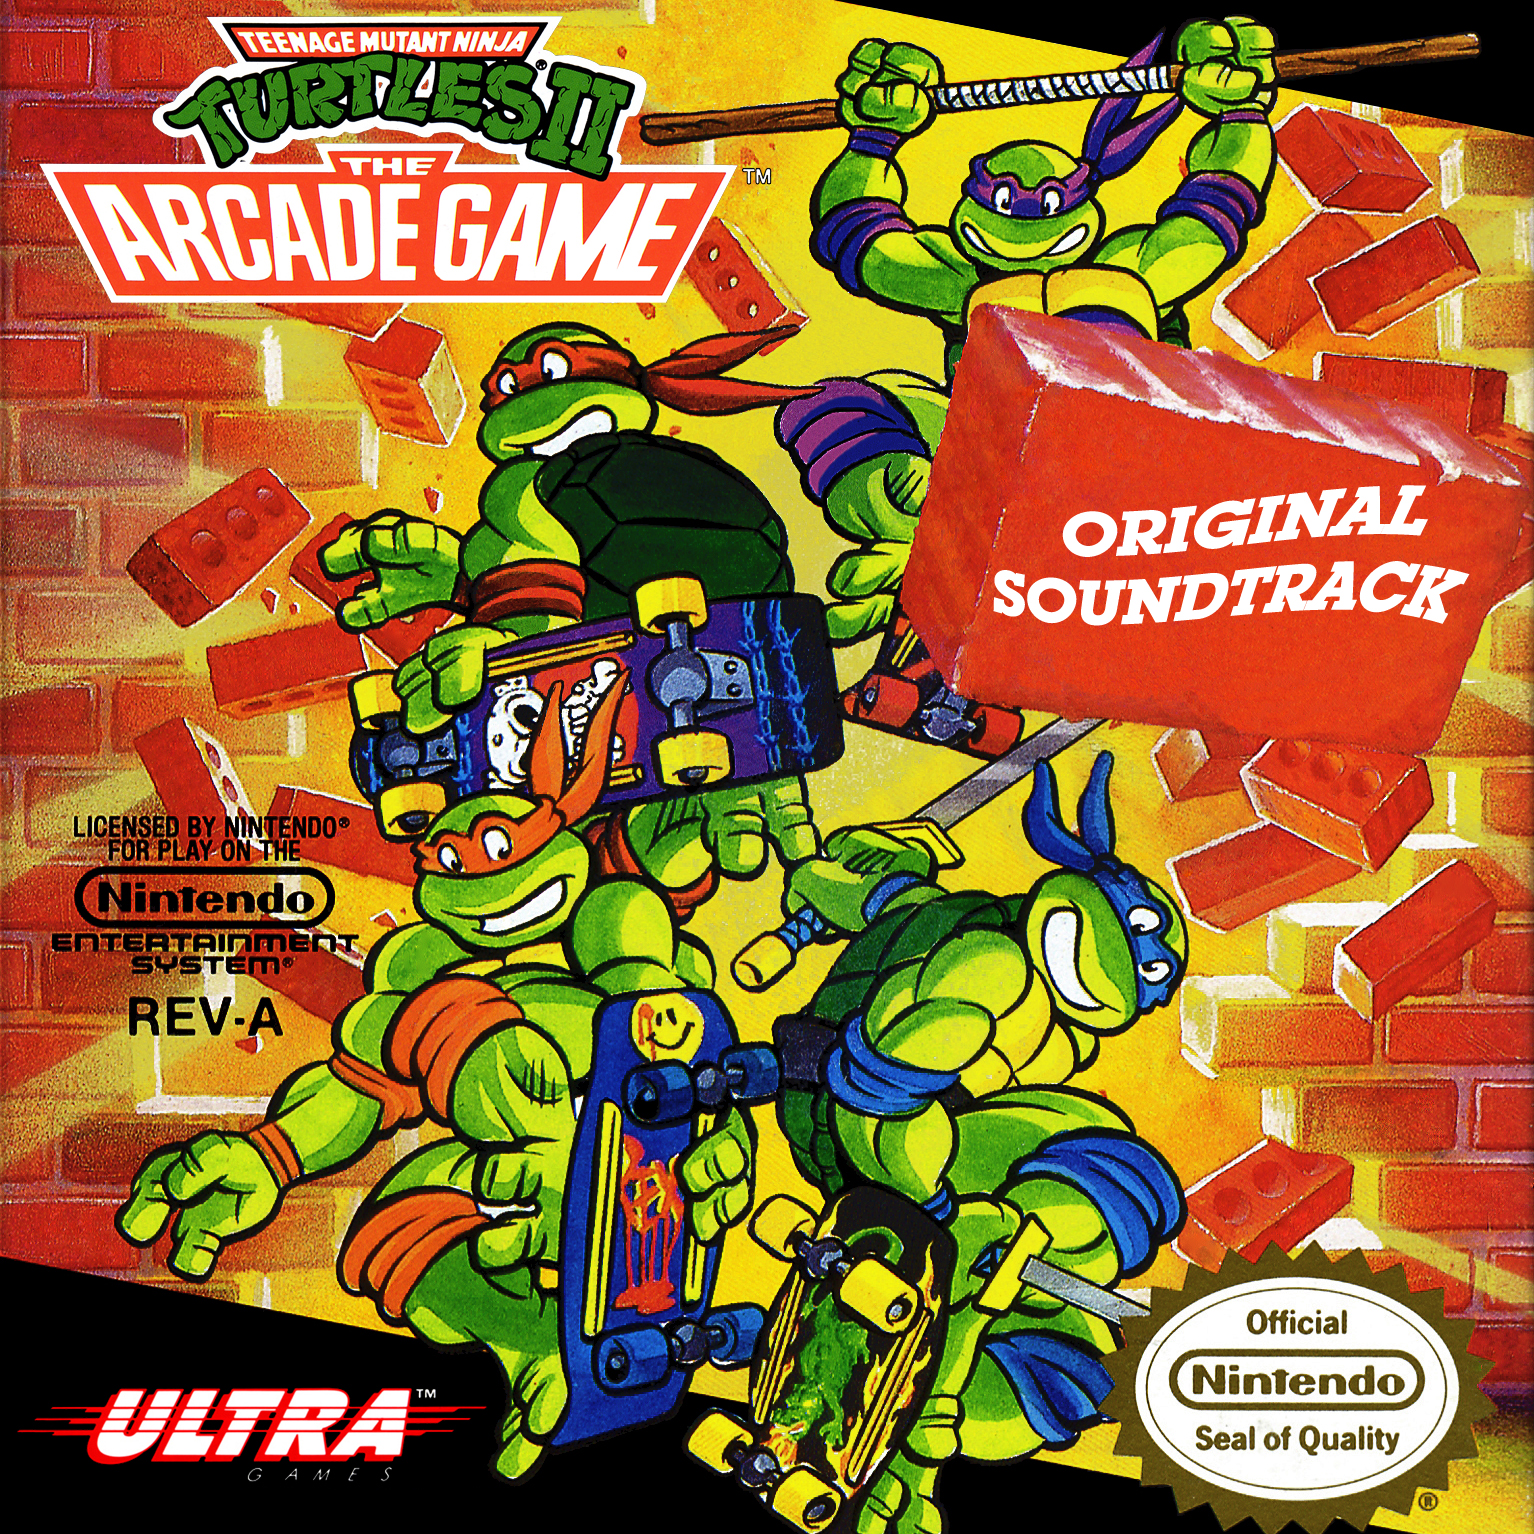 Lor Teenage Mutant Ninja Turtles 2 Feat Last Action Podcast Gamezilla Media